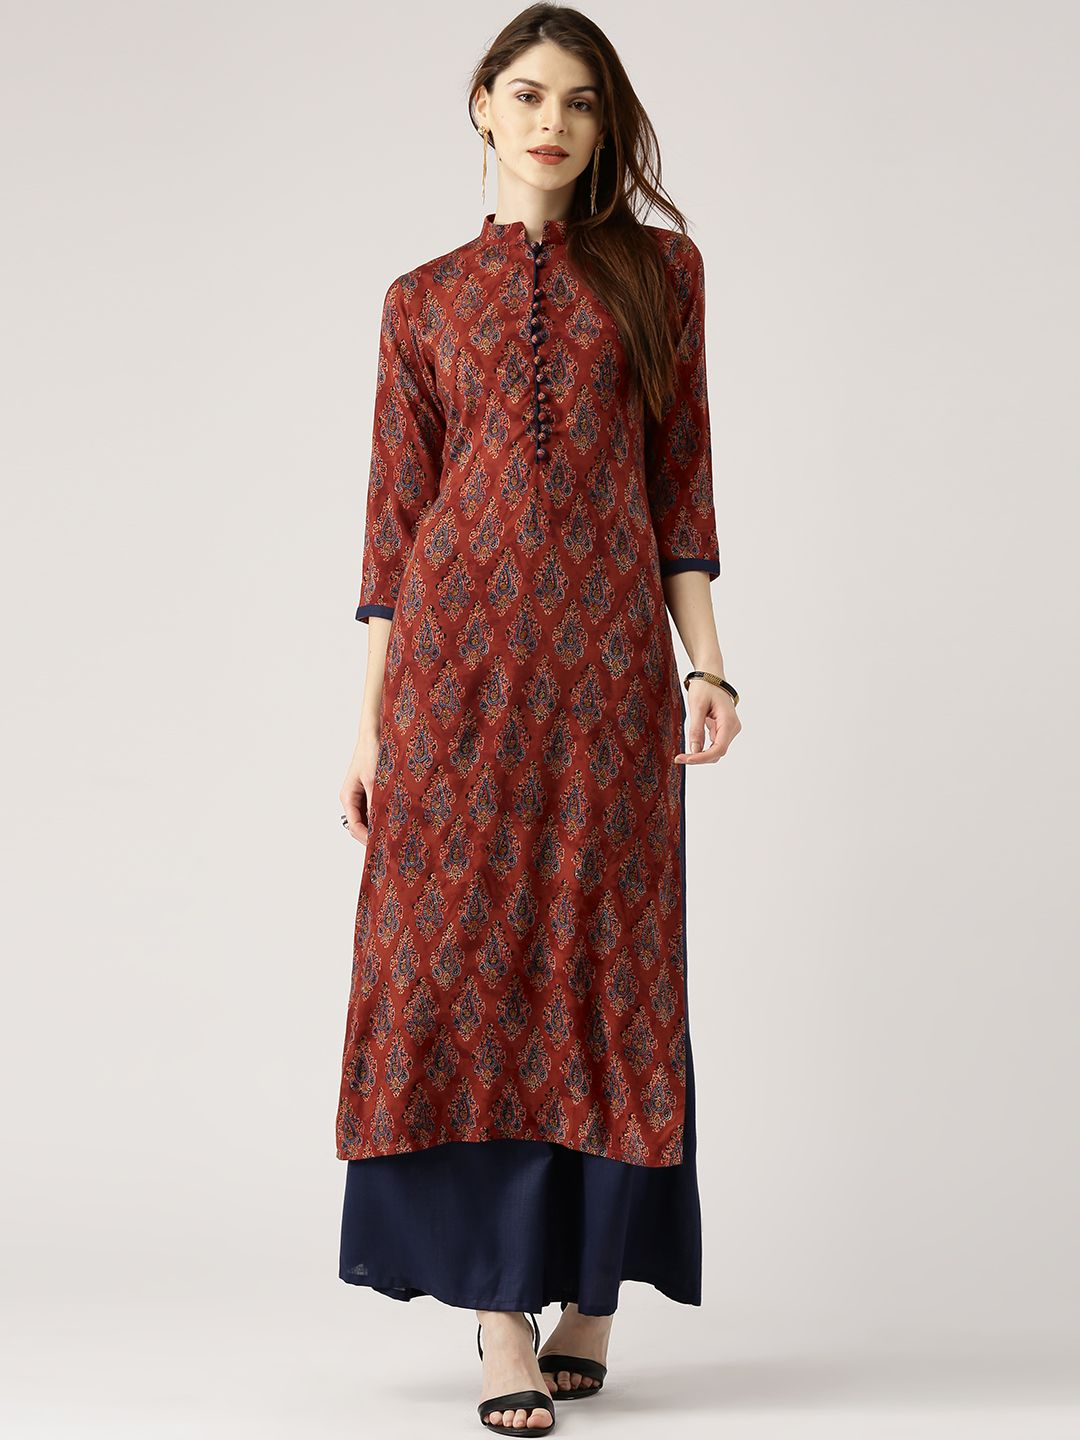 c8404454240 Buy Libas Women Rust Red   Navy Blue Printed Kurta With Palazzos - Kurta  Sets for Women 2229814